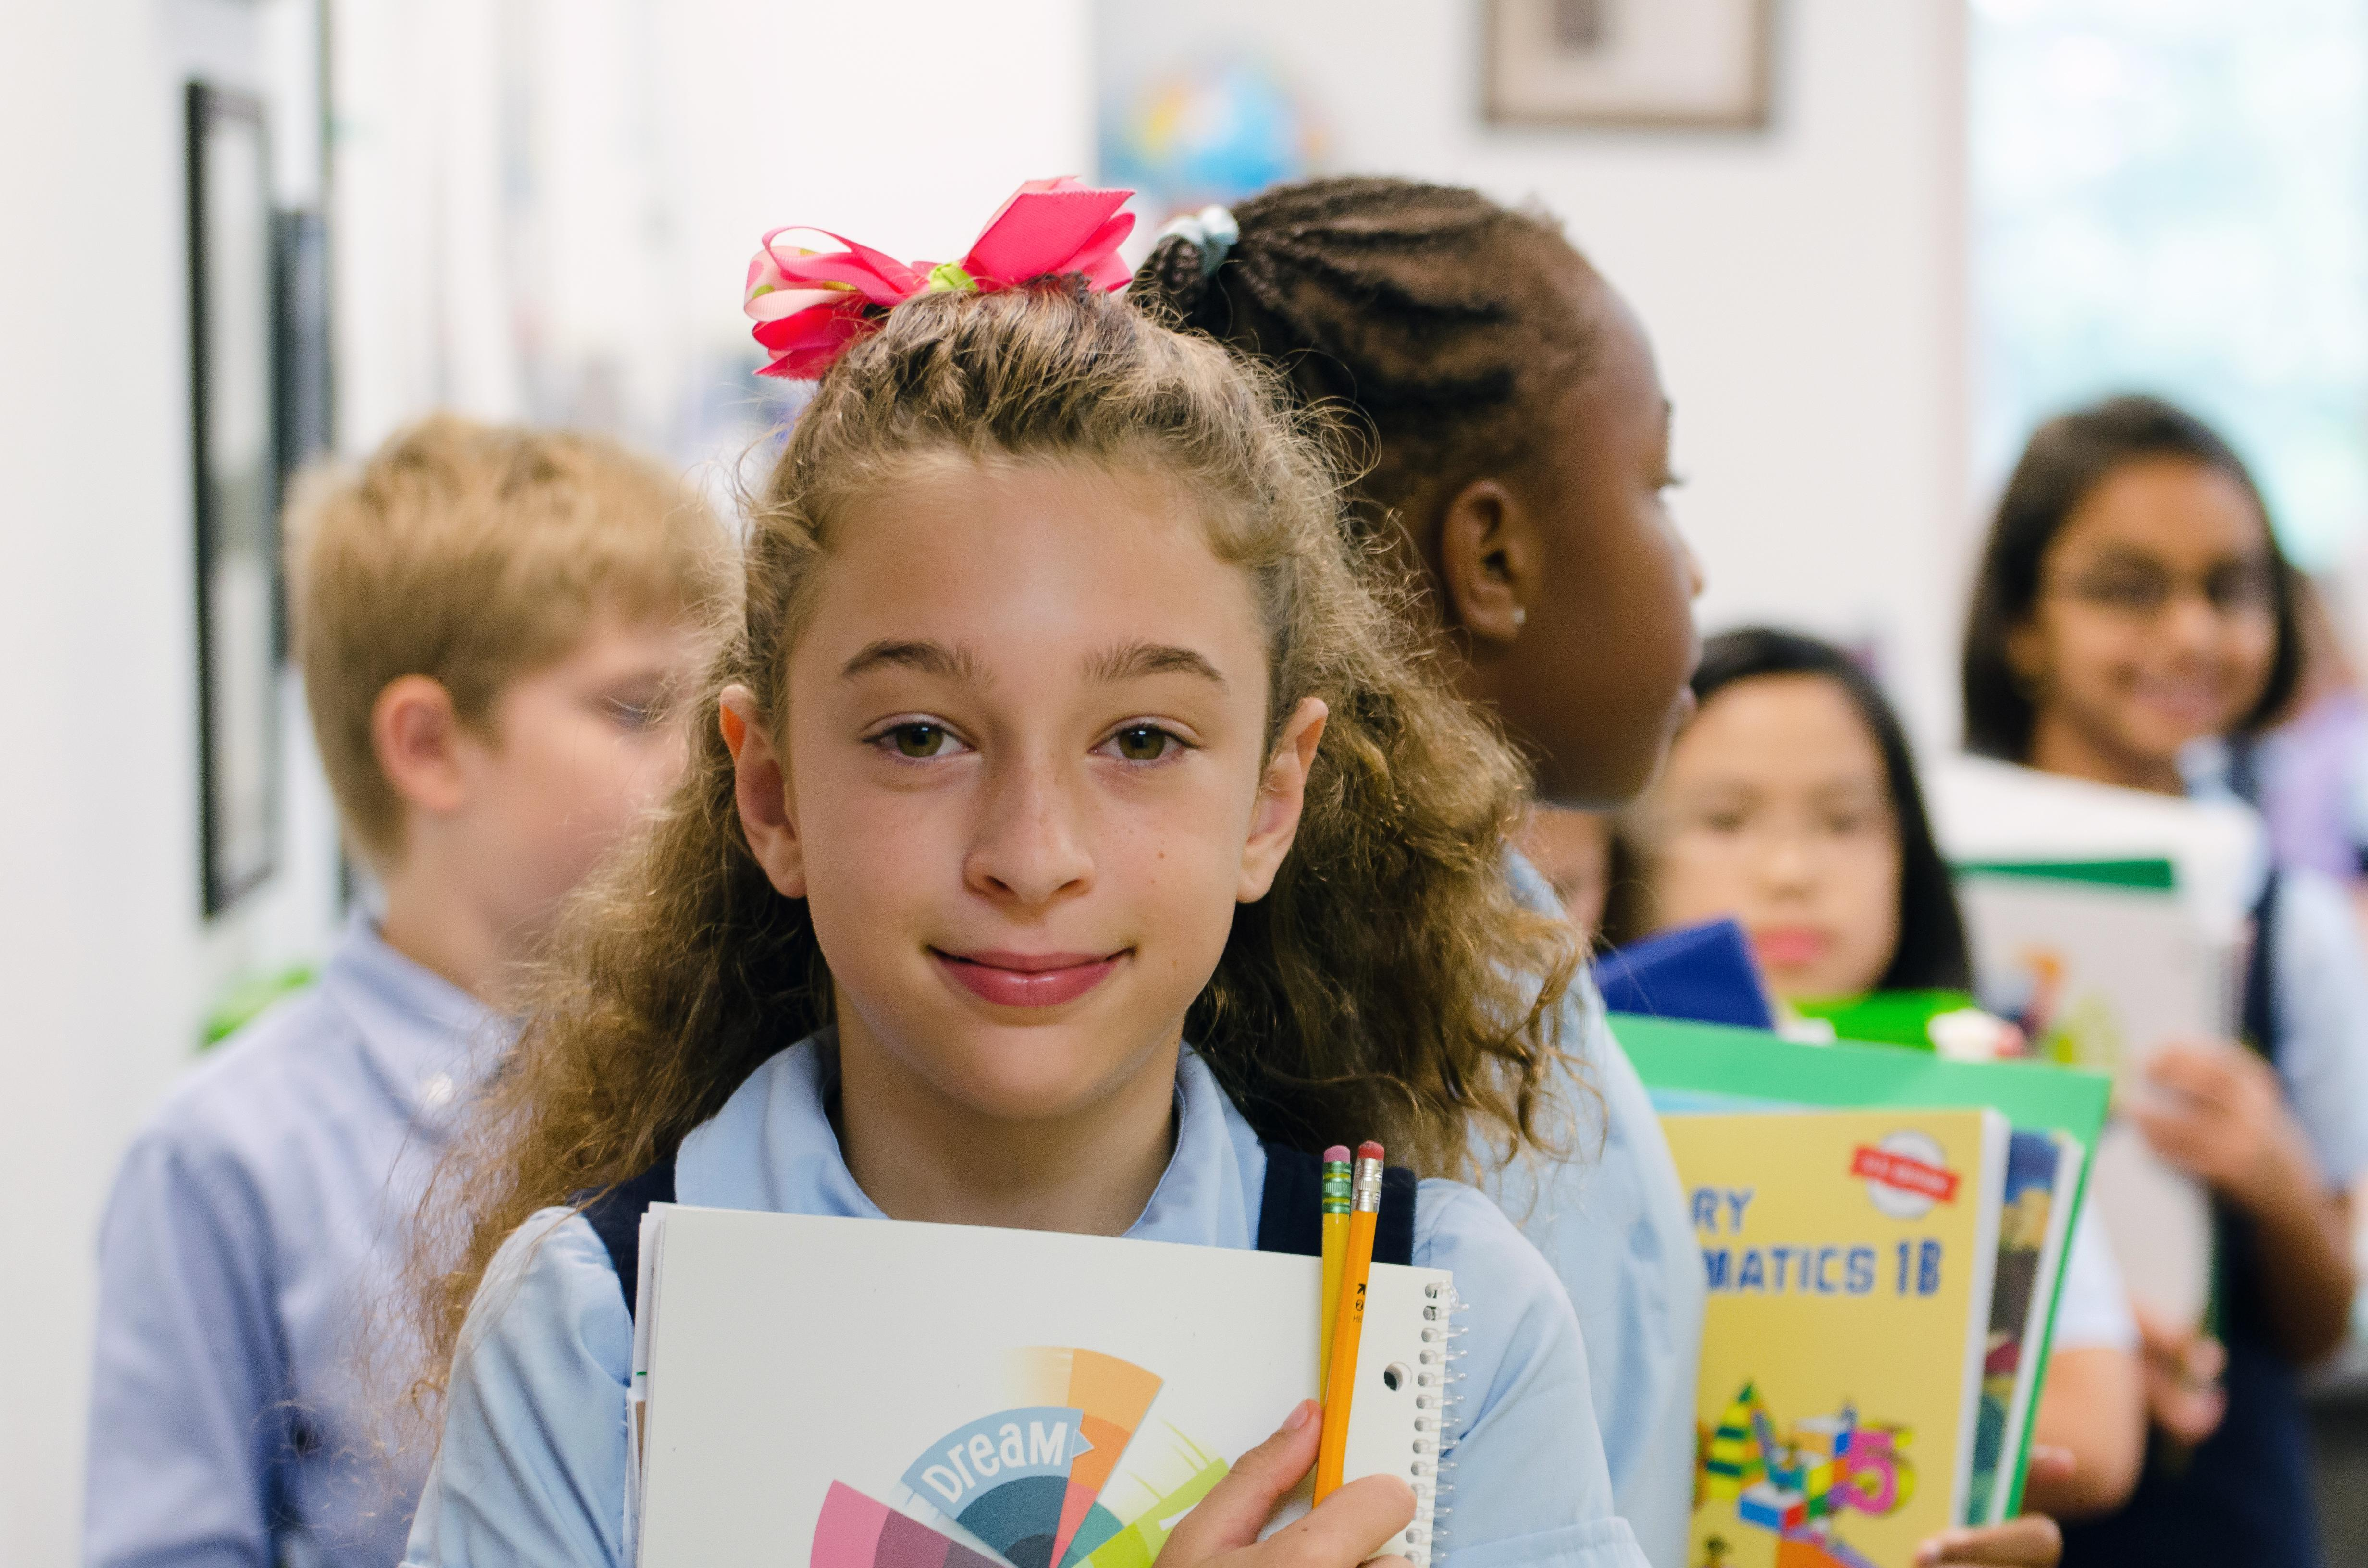 Student holding notebook